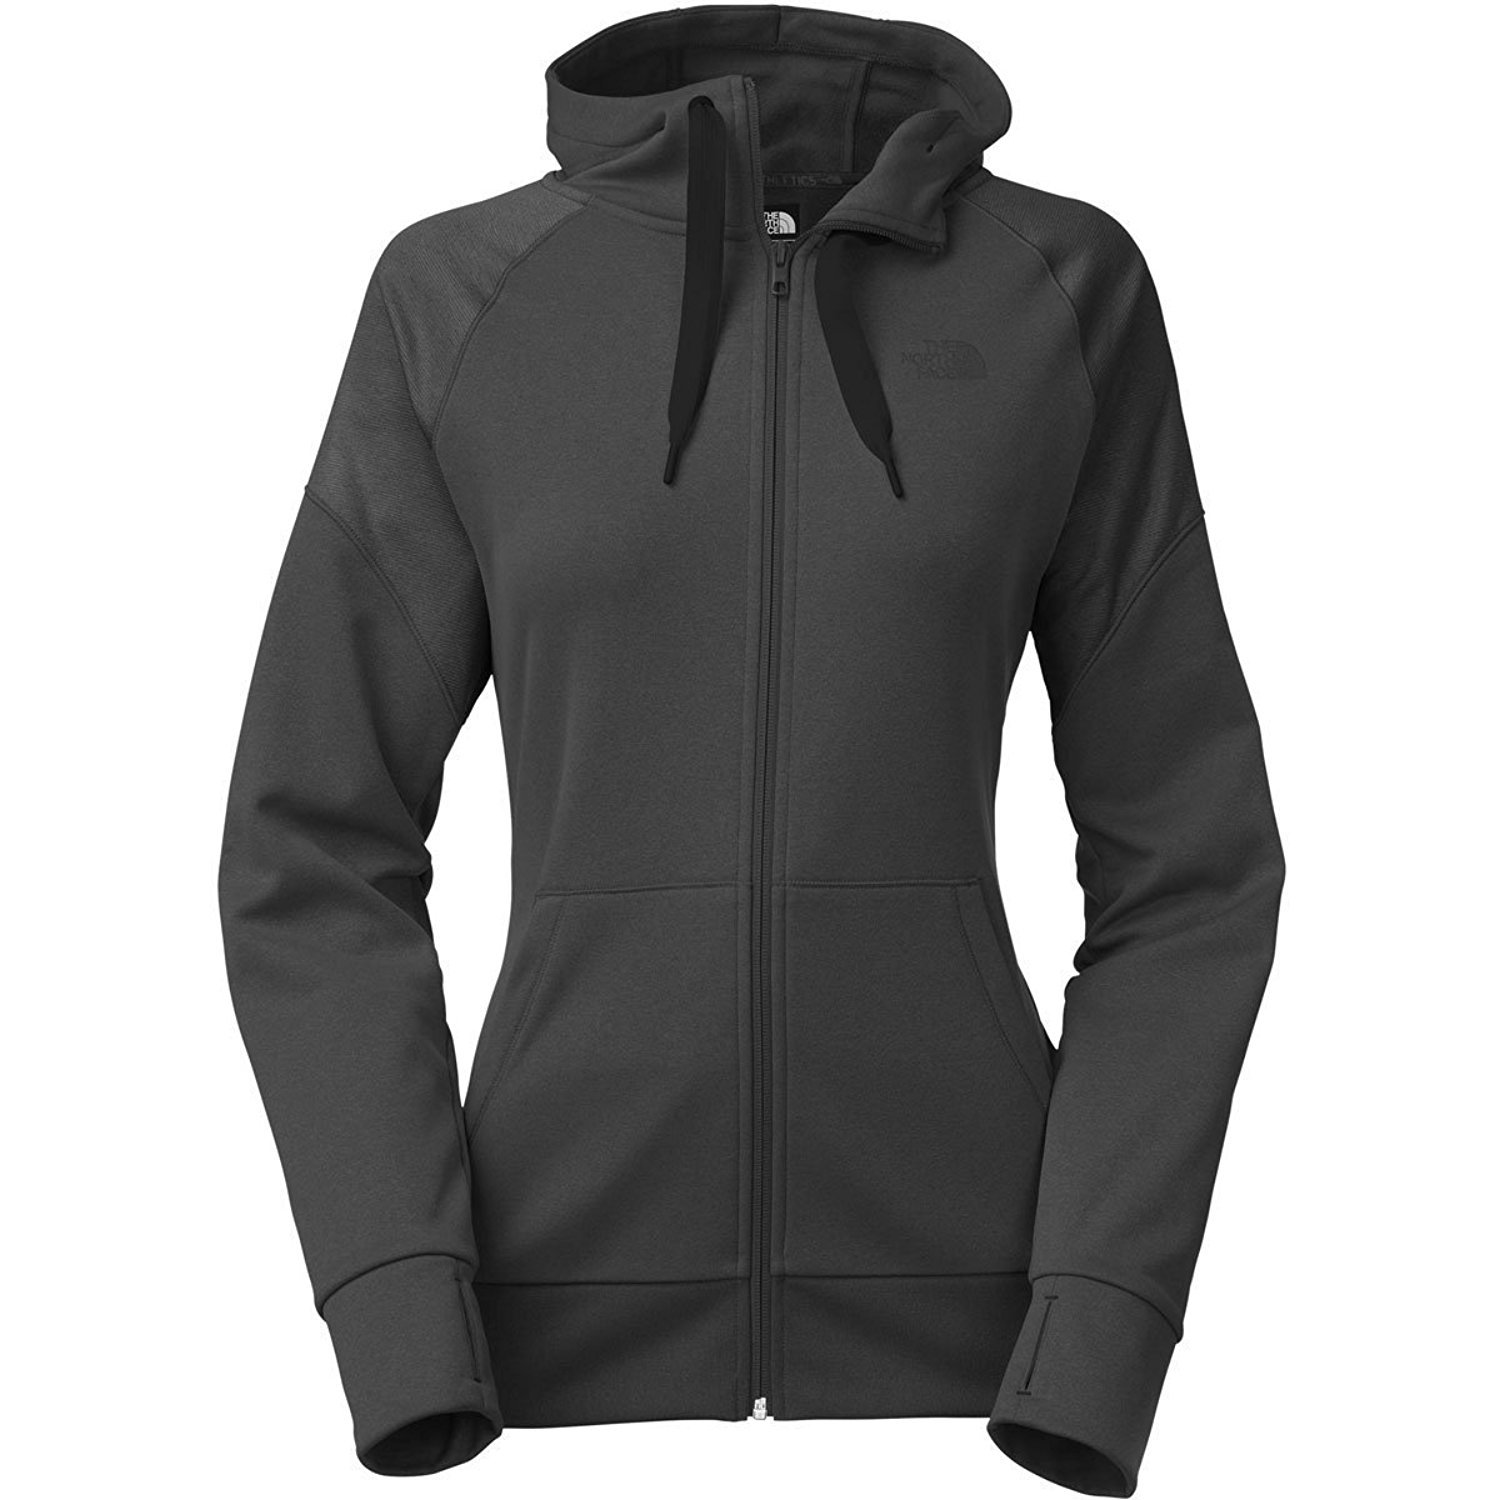 d1530c652 The North Face Women's Suprema Full Zip Hoodie